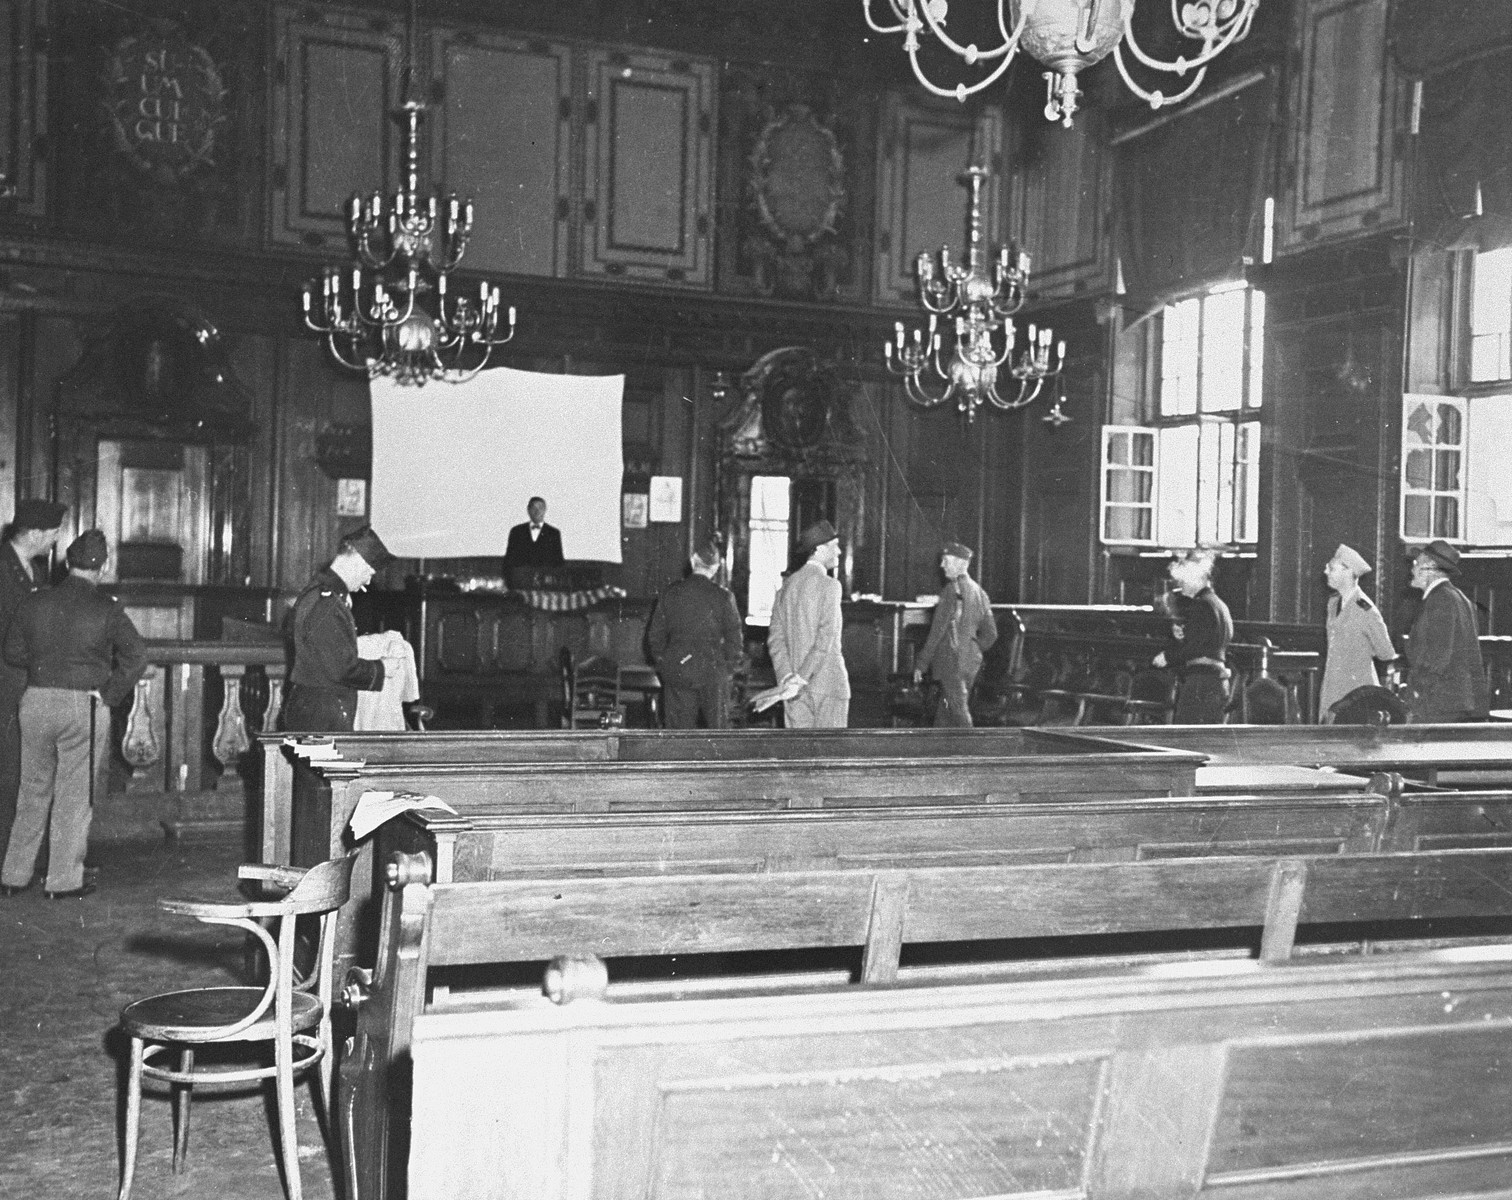 The courtroom where the International Military Tribunal trial of war criminals will be held, before any repairs or alterations were done.